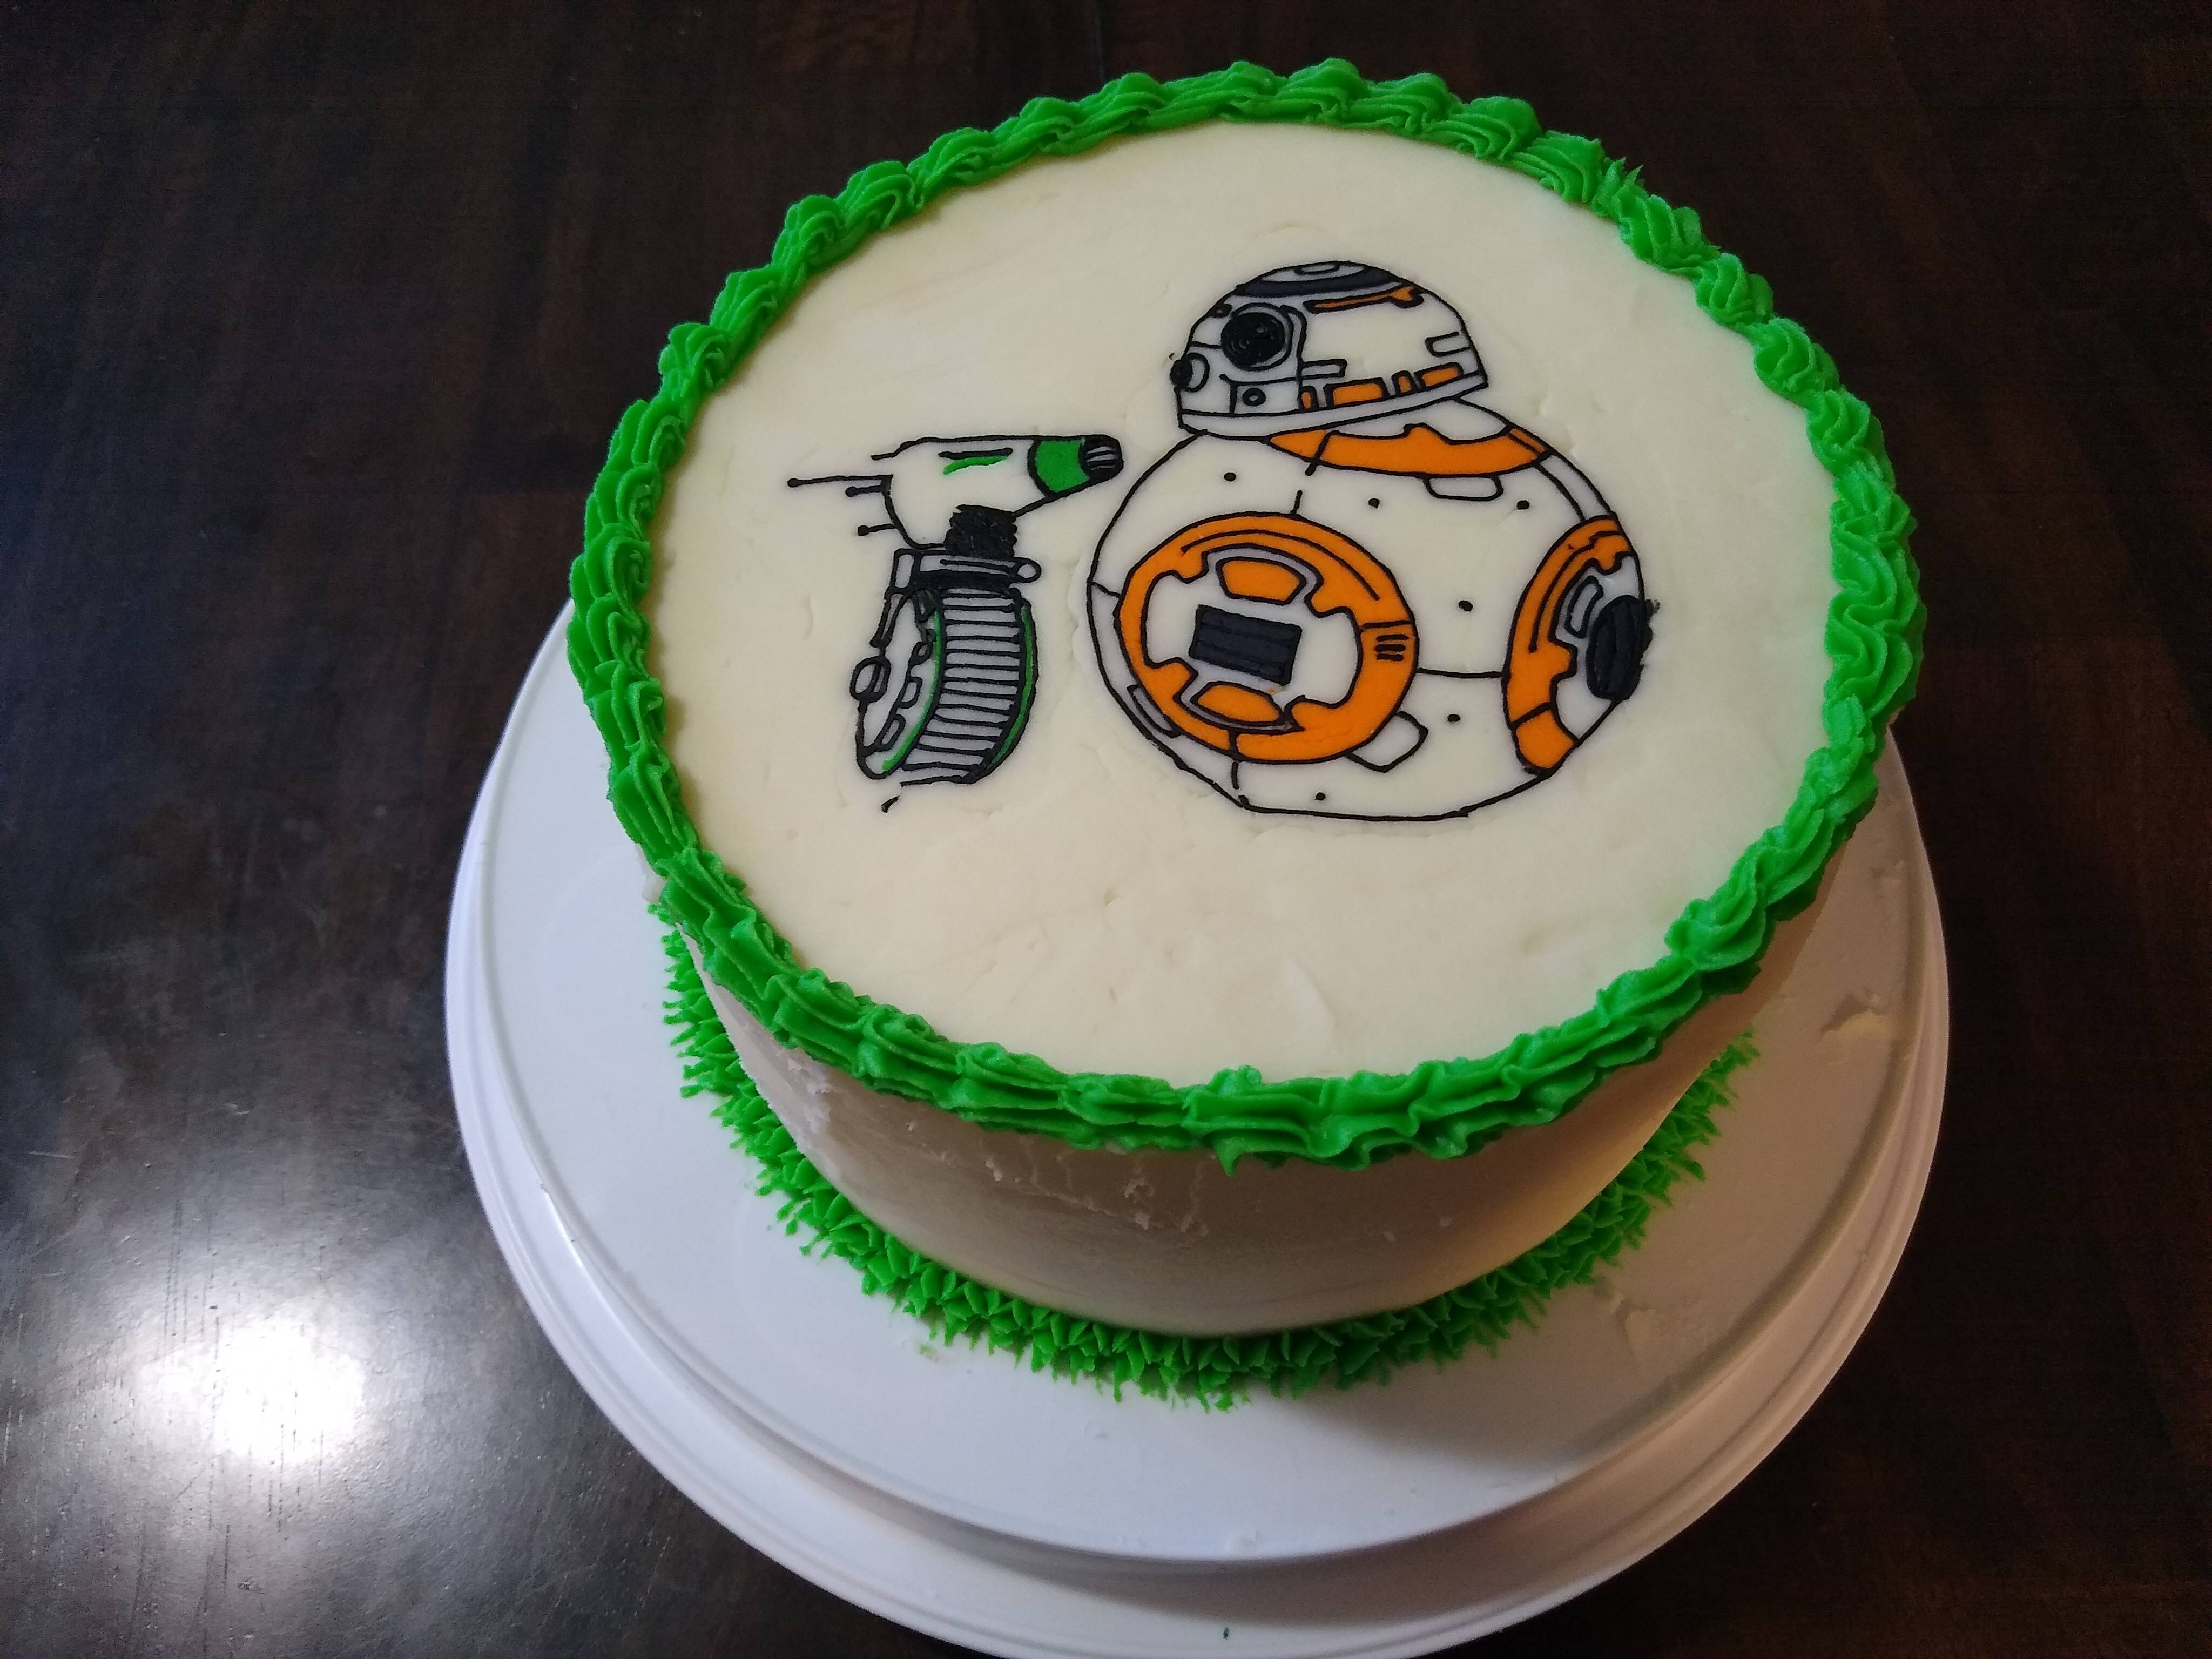 I made this cake for May the 4th this year. I think I did pretty good if I do say so myself.